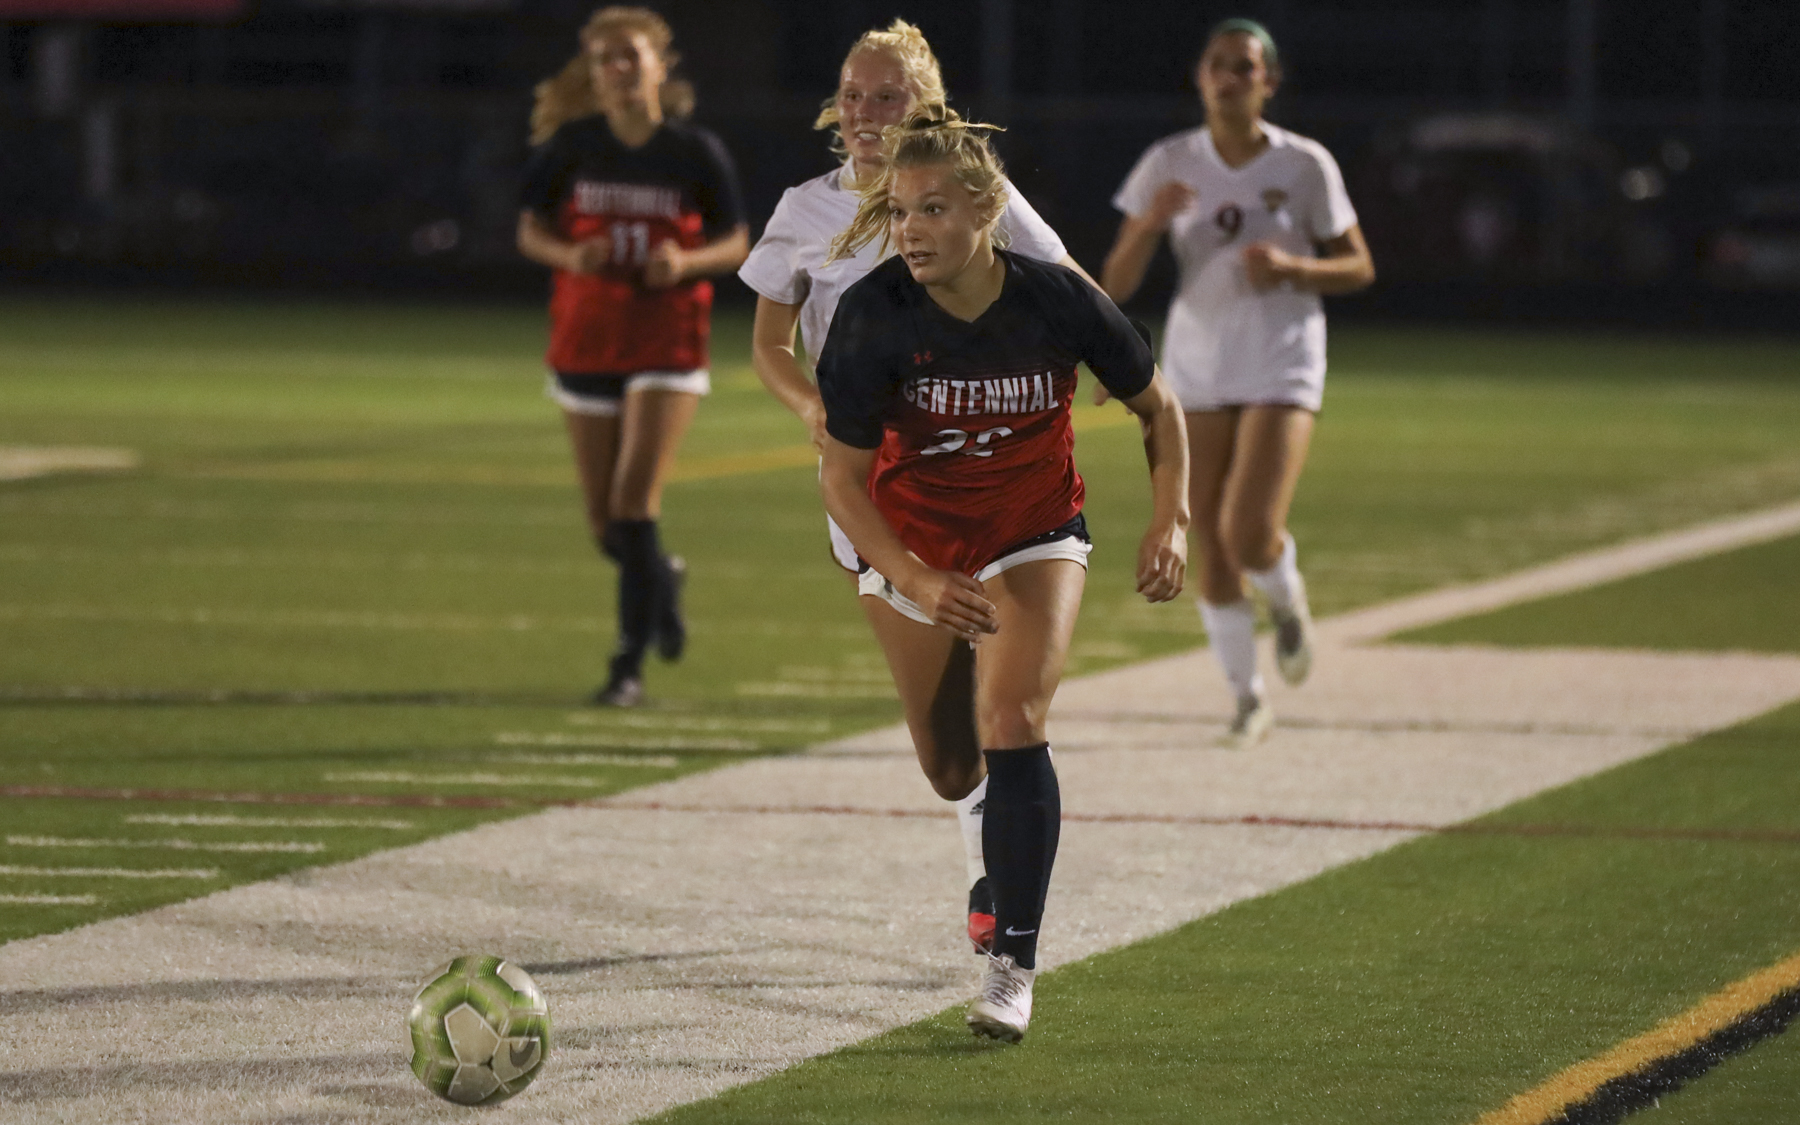 Centennial's Tatum Trettel (22) brings the ball up the sideline against Maple Grove Wednesday night. The Cougars defeated the Crimson 1-0 at Centennial High School. Photo by Jeff Lawler, SportsEngine